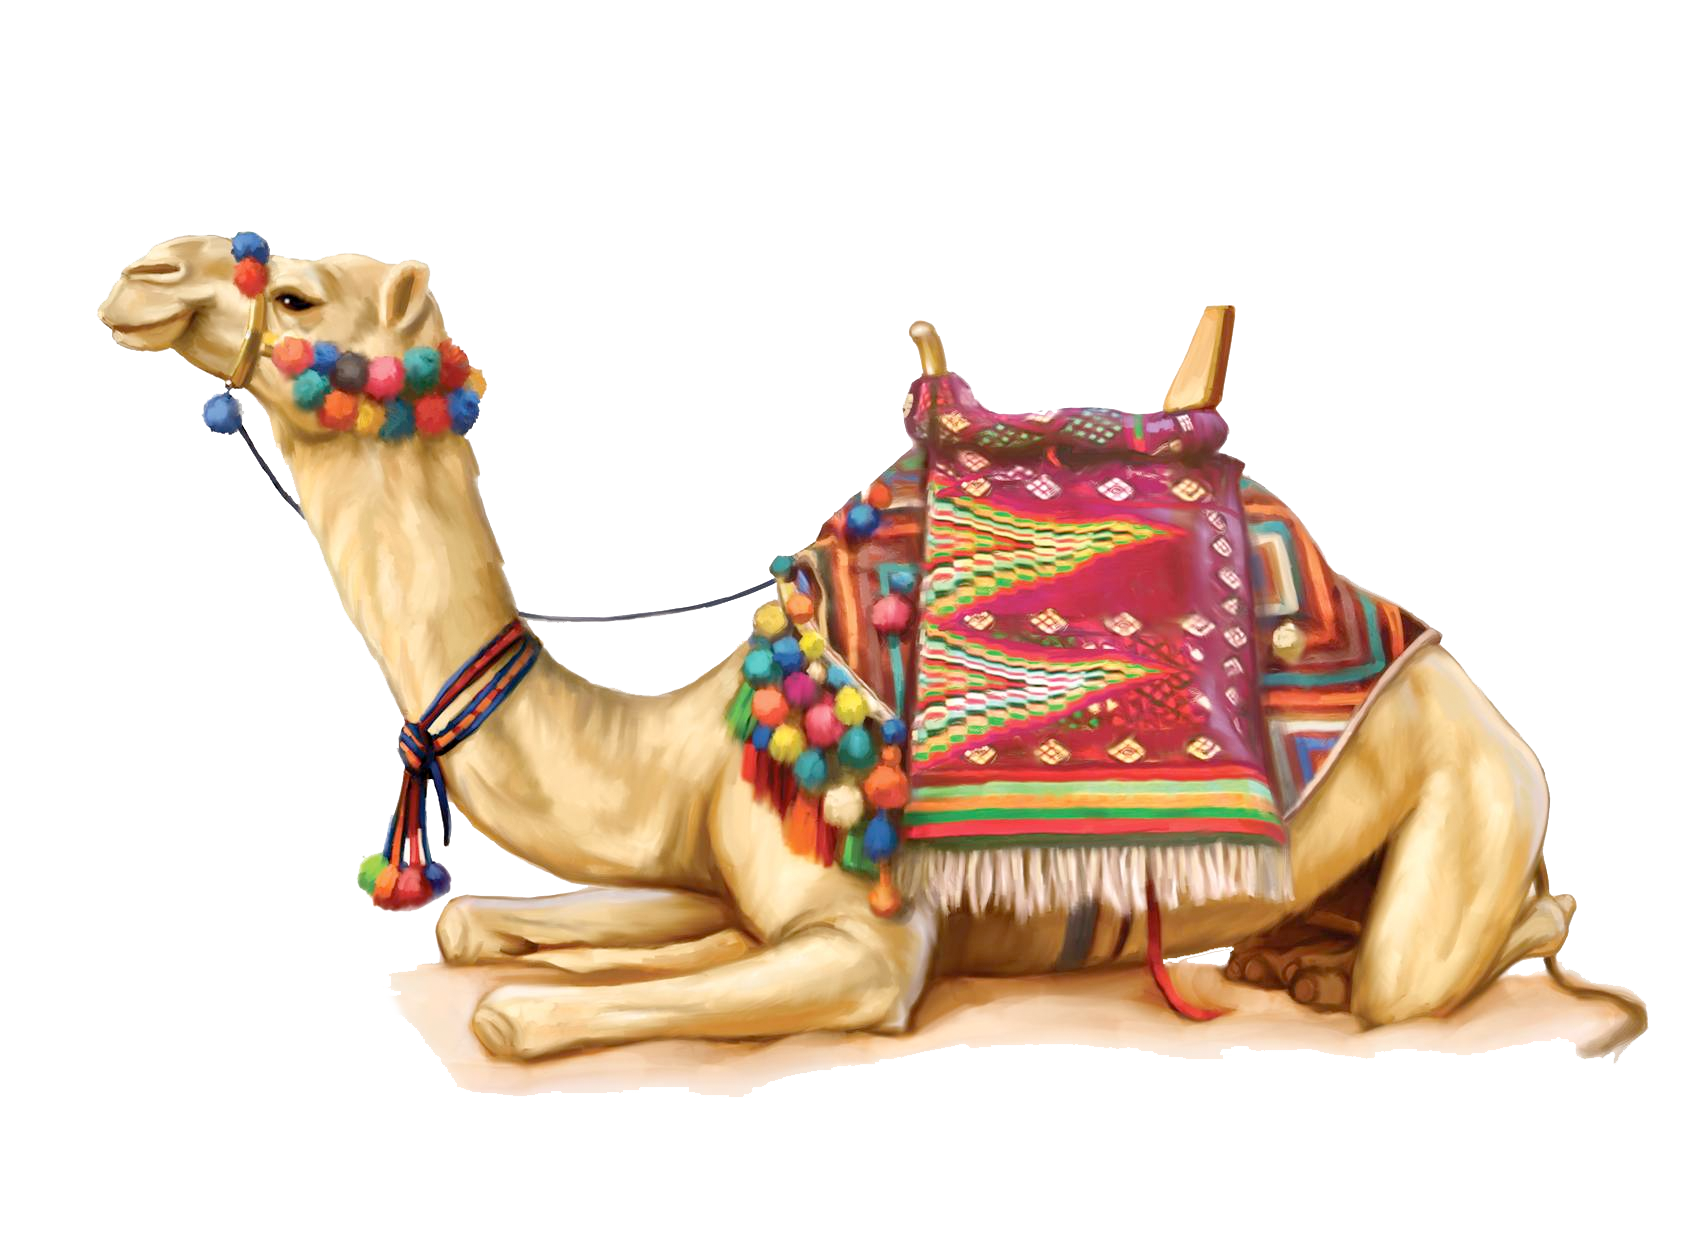 Desert clipart camel egyptian. Camels in the png